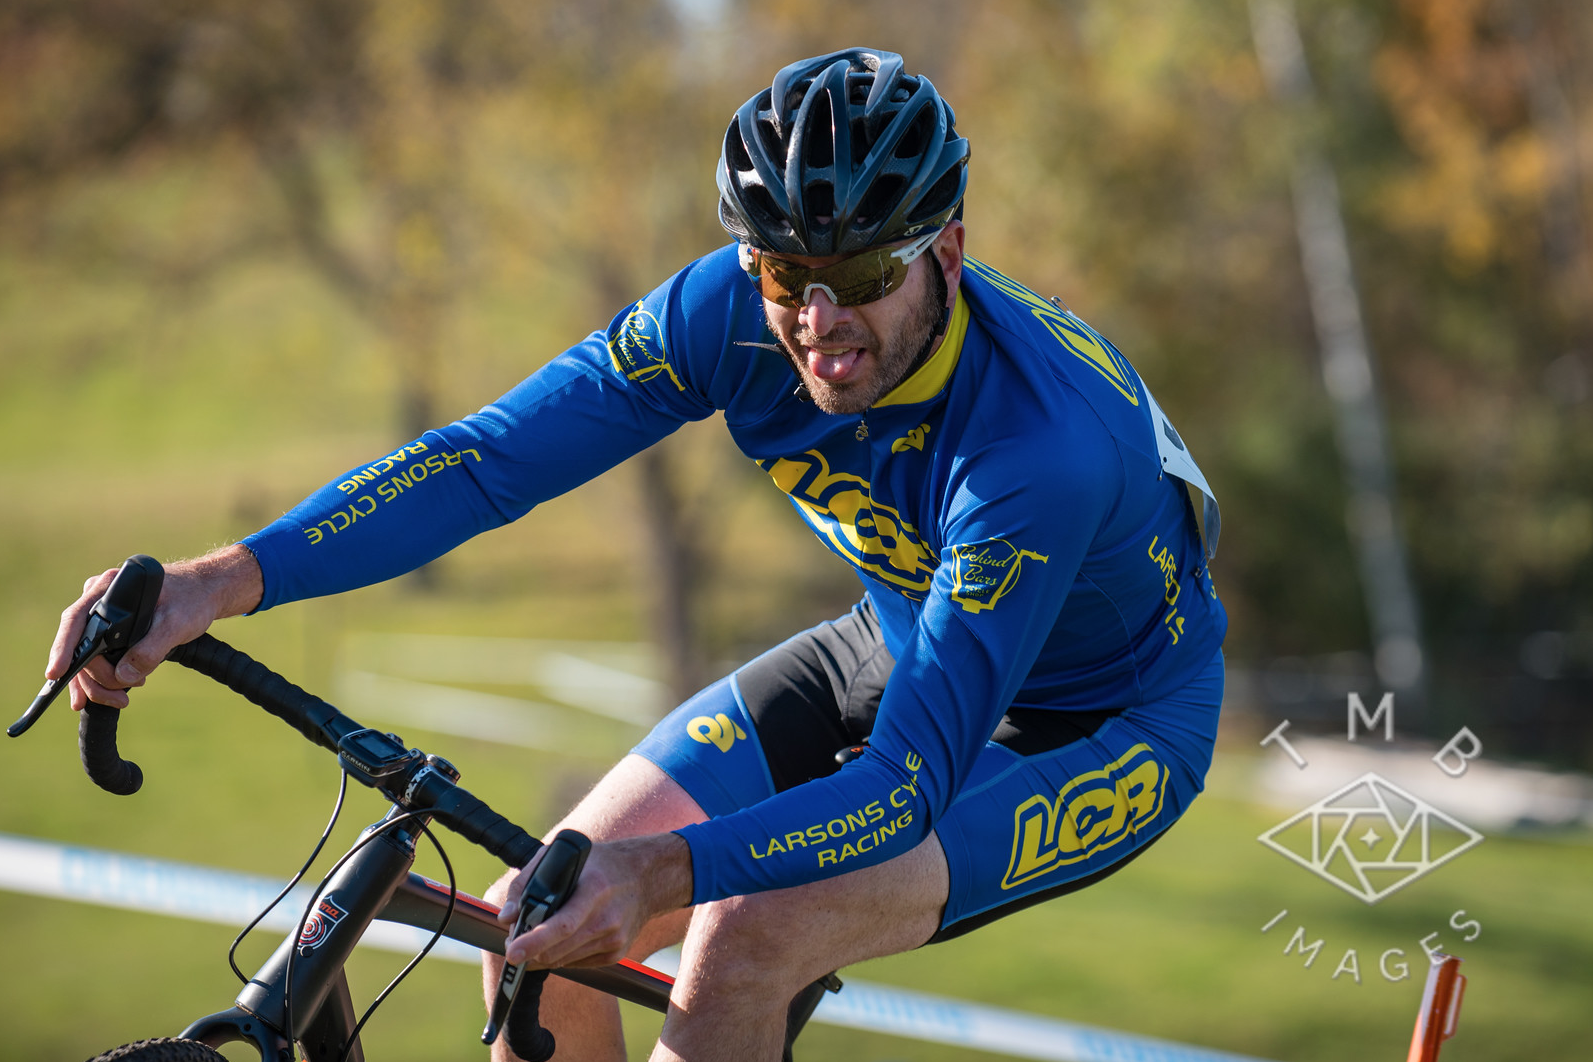 Chris Gibbs is going to be riding in this year's Tour de Tush event to raise funds and awareness // Photo by Todd Bauer, TMB Images